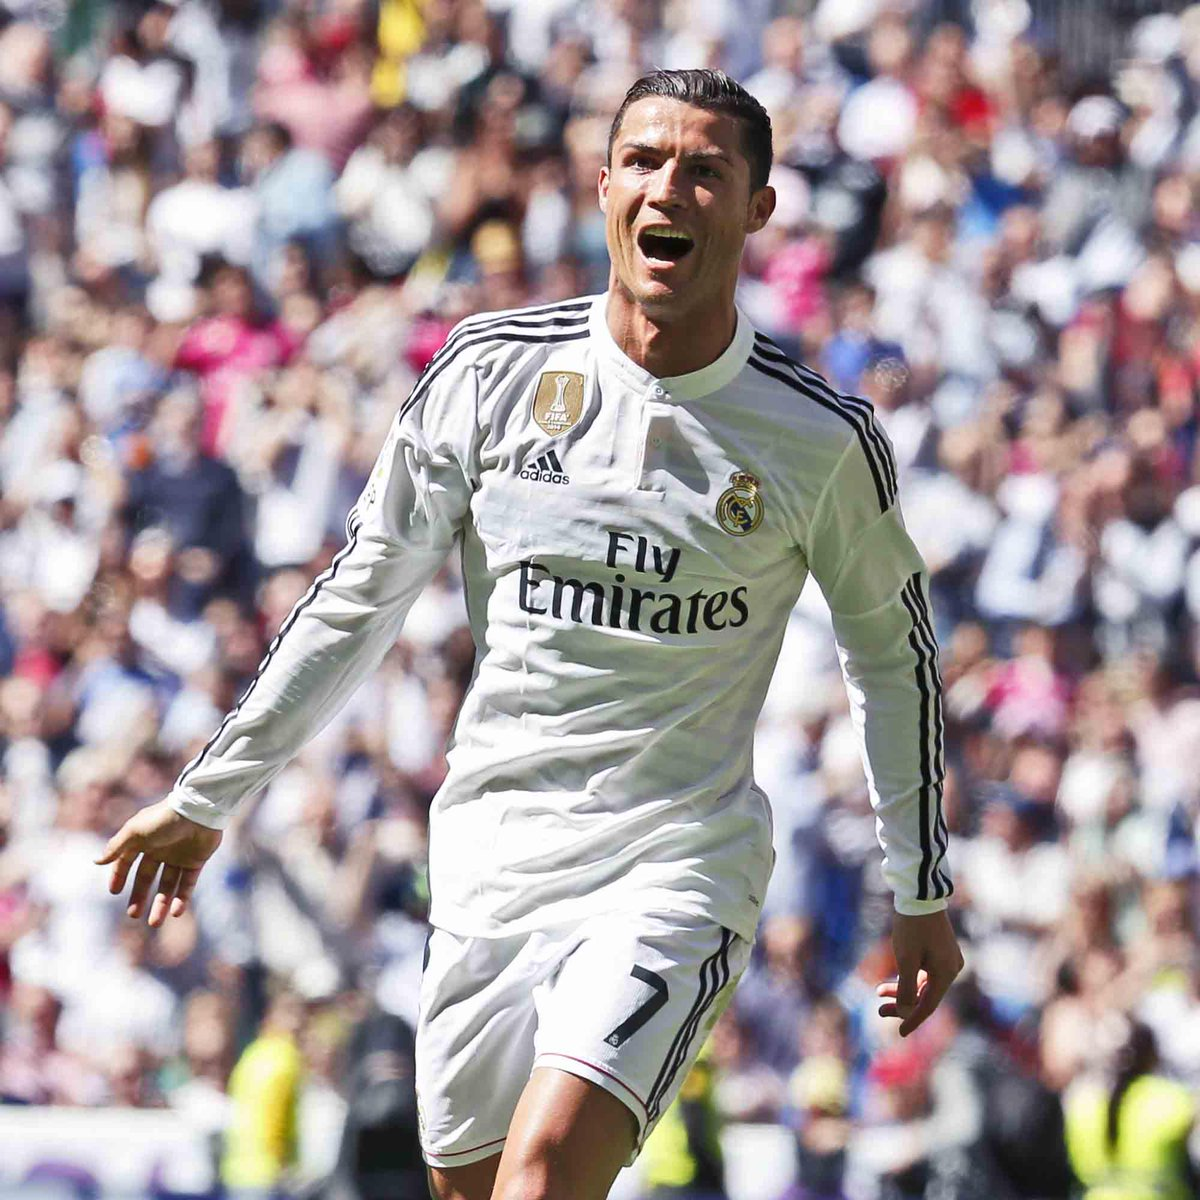 Real Madrid C F On Twitter Cristiano Ronaldo Is The Forerunner For The 2014 2015 European Golden Shoe With 42 Goals To His Name 84 Points Http T Co J2k6rnnfos